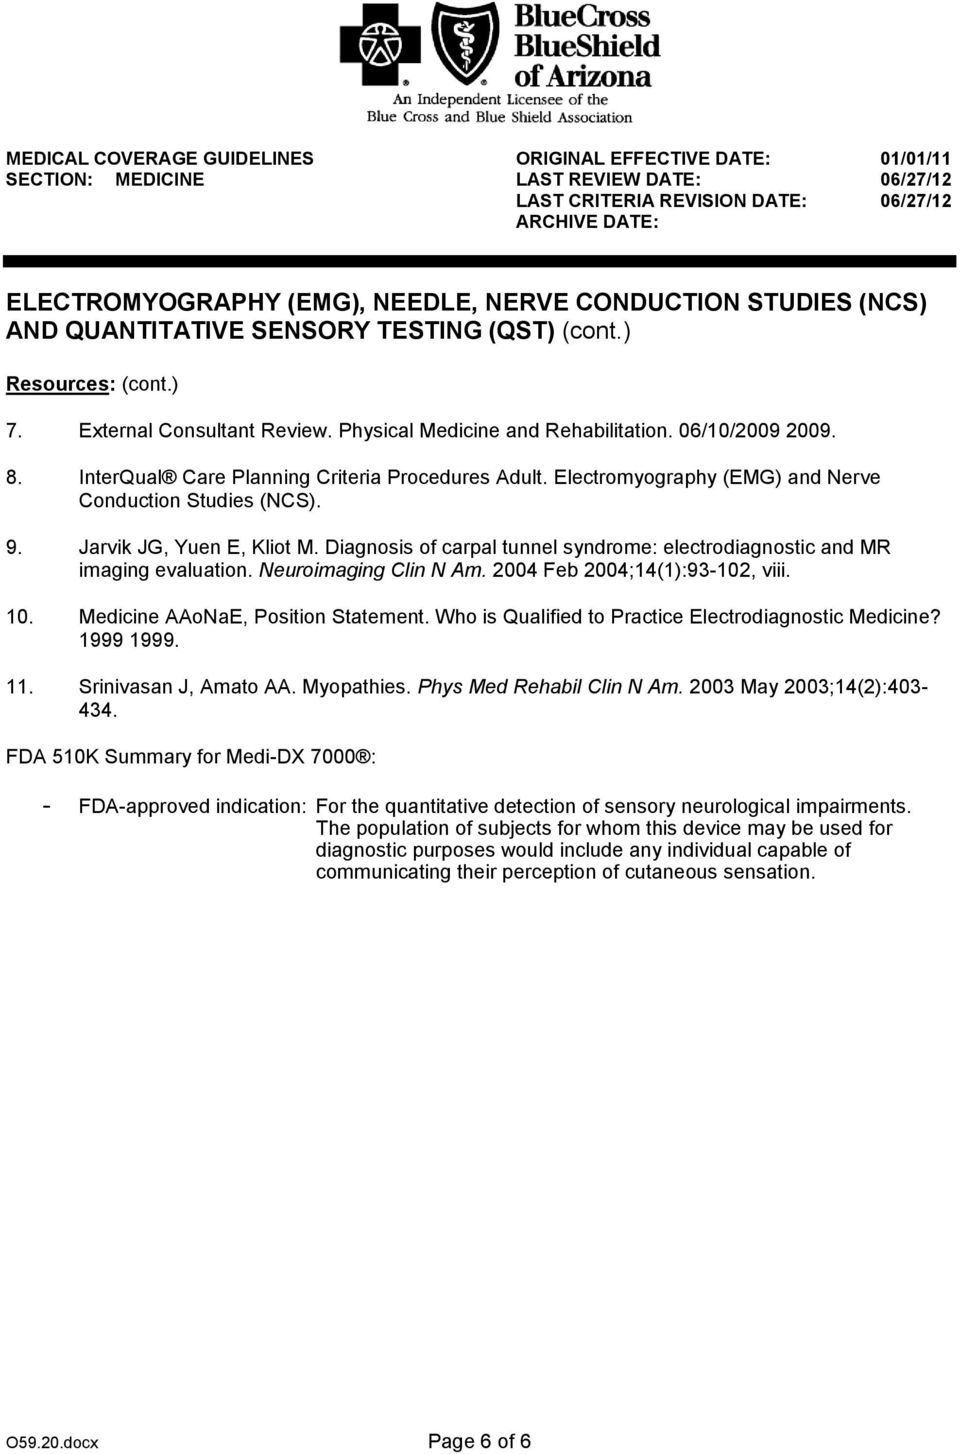 2004 Feb 2004;14(1):93-102, viii. 10. Medicine AAoNaE, Position Statement. Who is Qualified to Practice Electrodiagnostic Medicine? 1999 1999. 11. Srinivasan J, Amato AA. Myopathies.